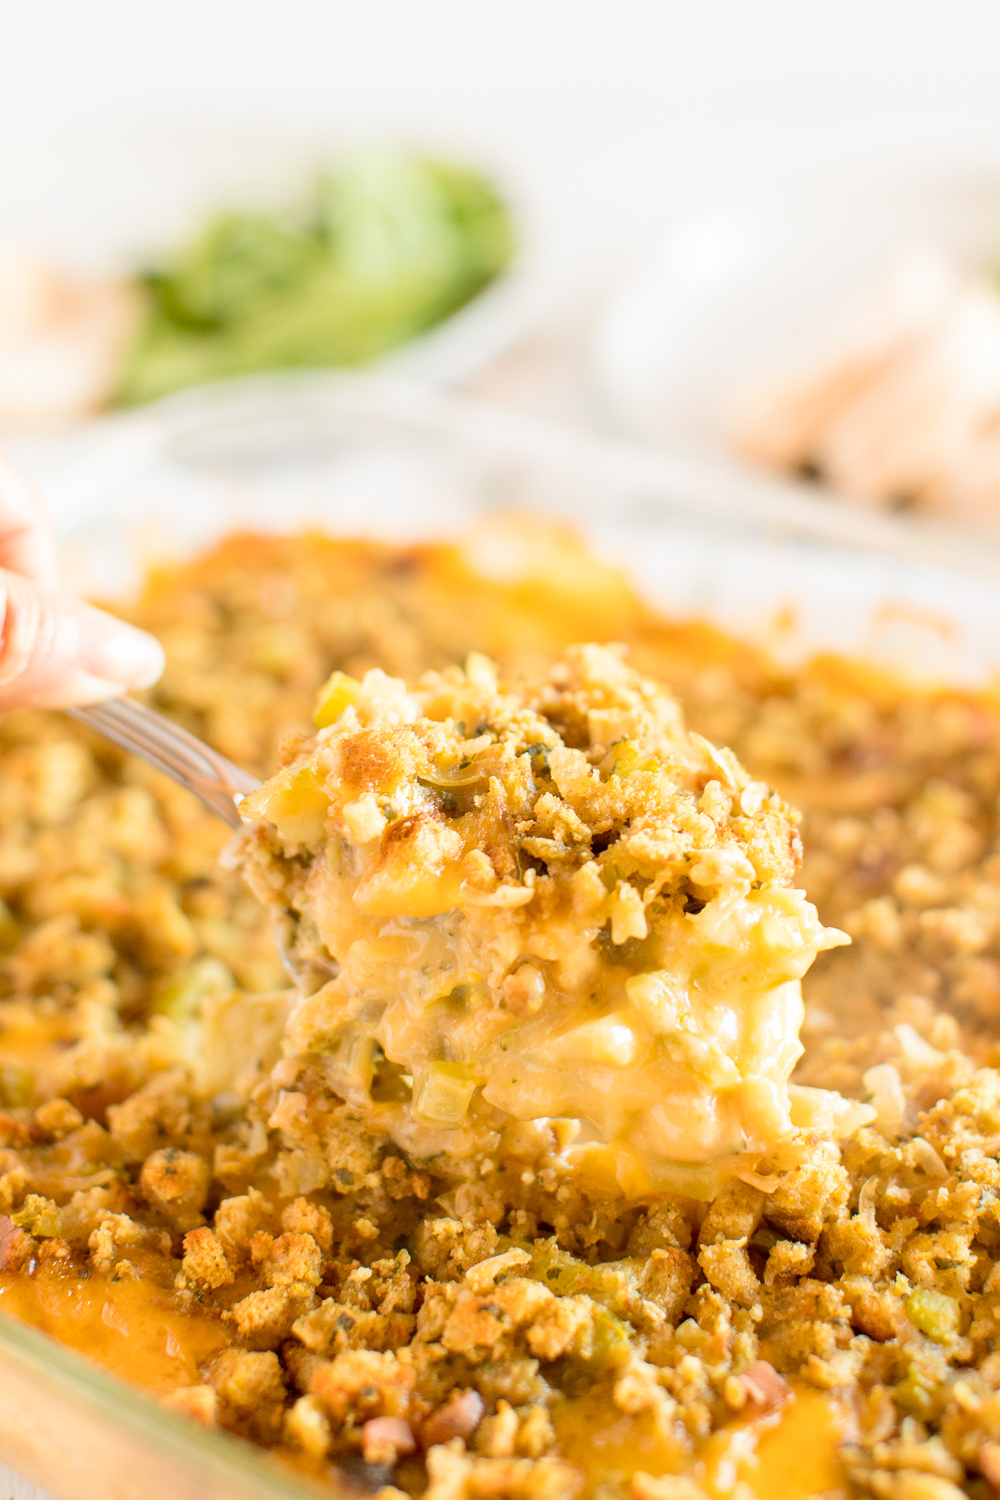 Broccoli Cheese Casserole is a wholesome, comforting side dish that'll compliment any meal. Made with broccoli florets, creamy soups, cheddar cheese, and herb stuffing, try making and sharing it at your next get-together!